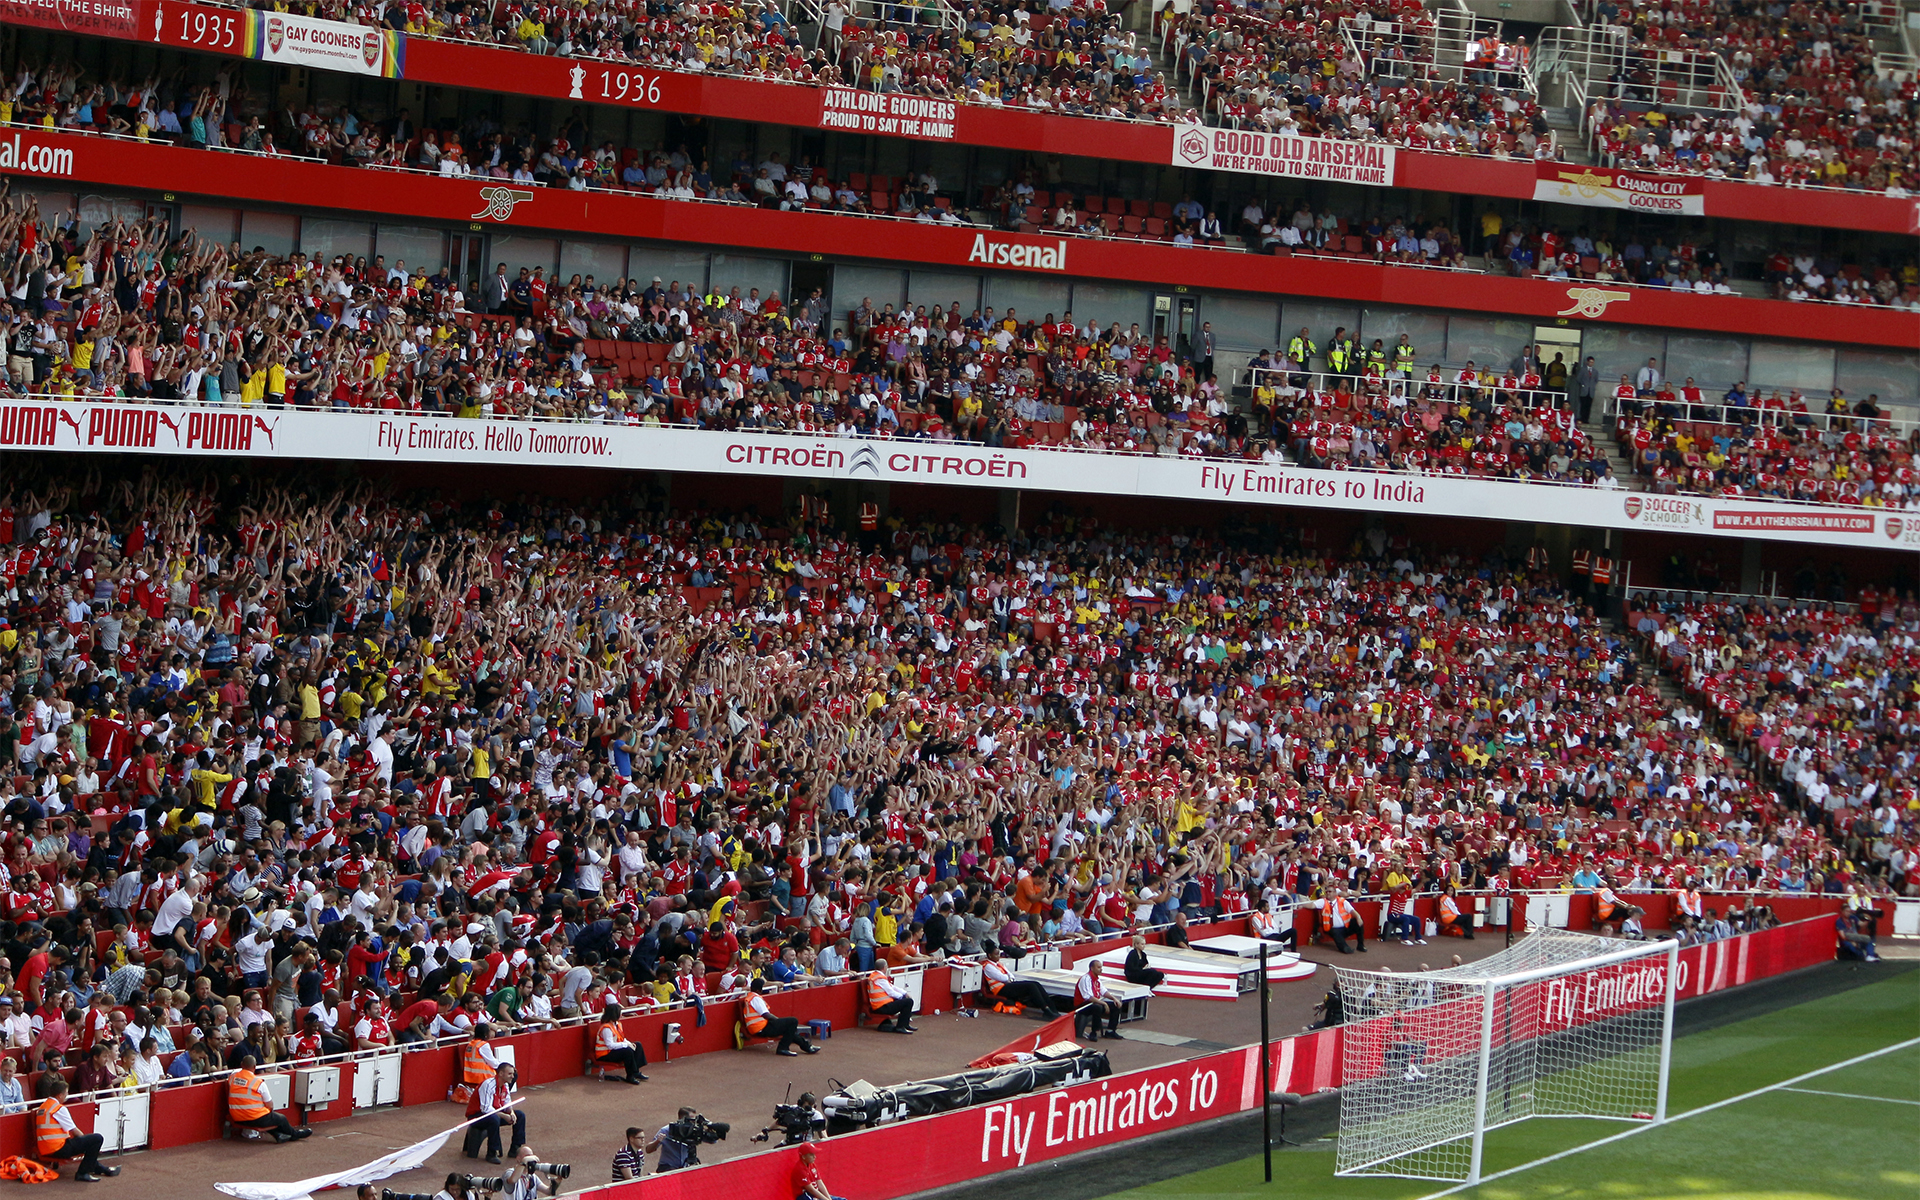 Home Of Arsenal